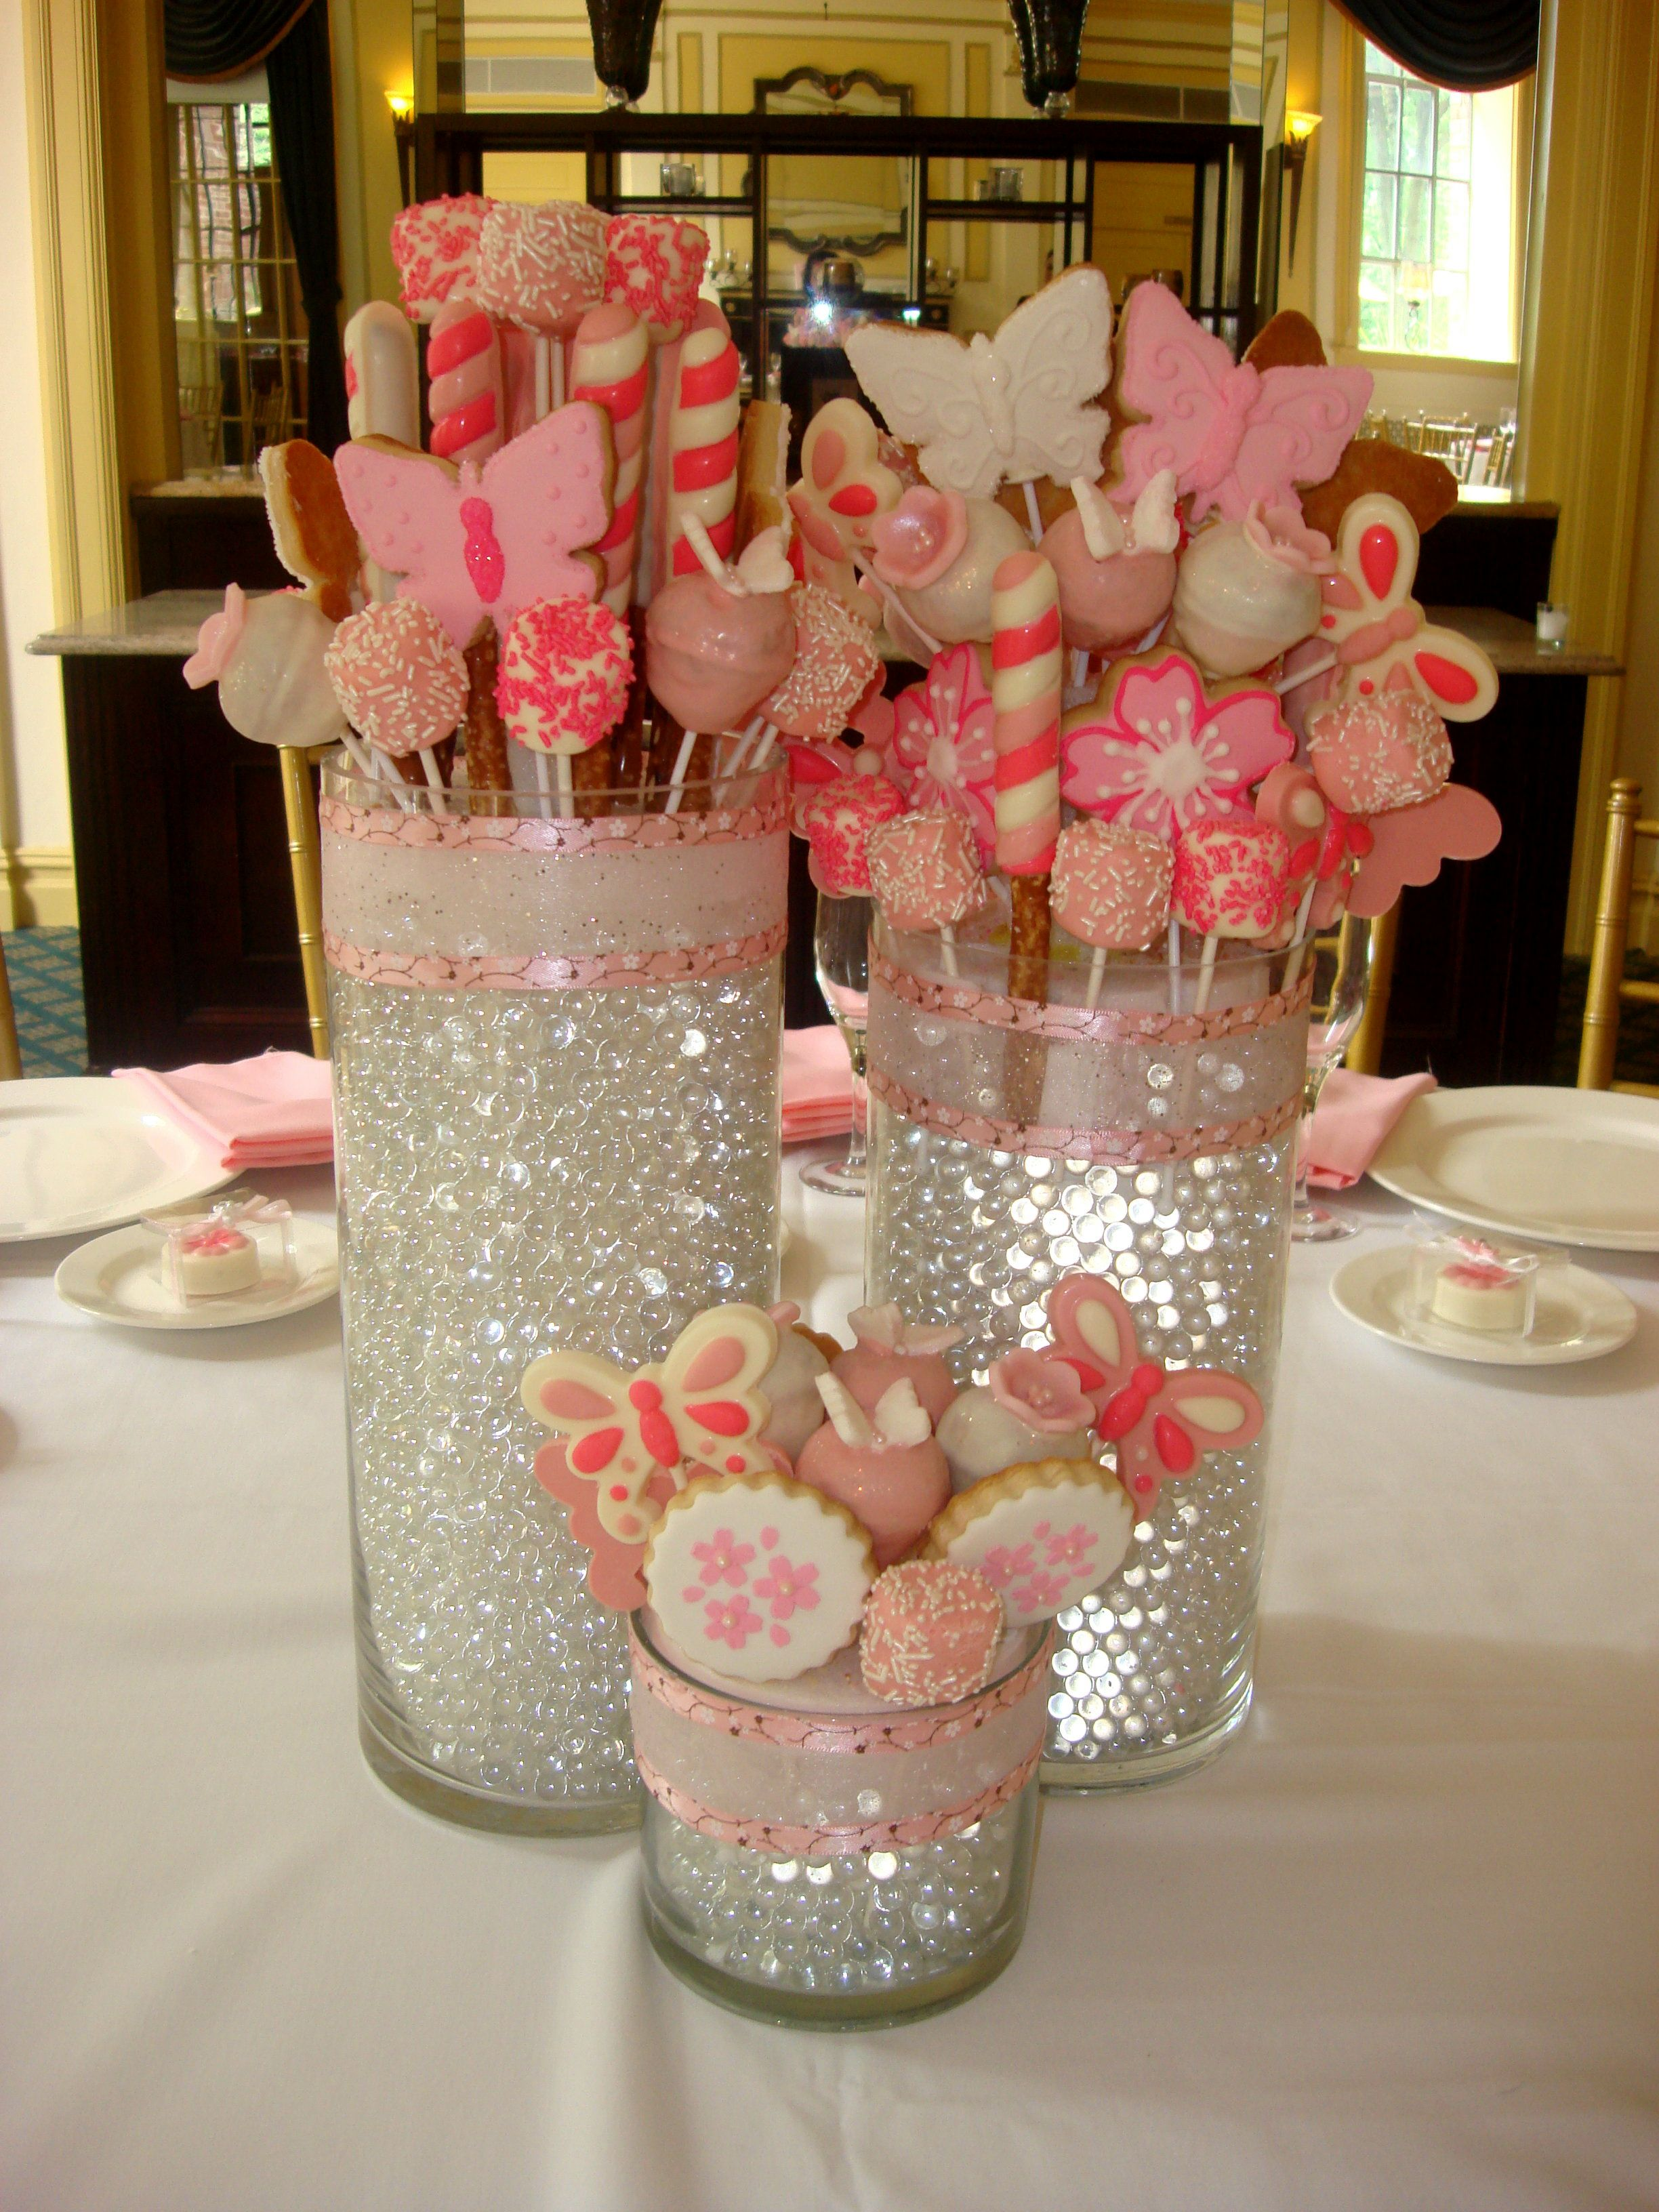 Diy table decorations for baby shower - Love This Idea For The Bridal Shower Christening Centerpiecesdiy Centerpieces For Baby